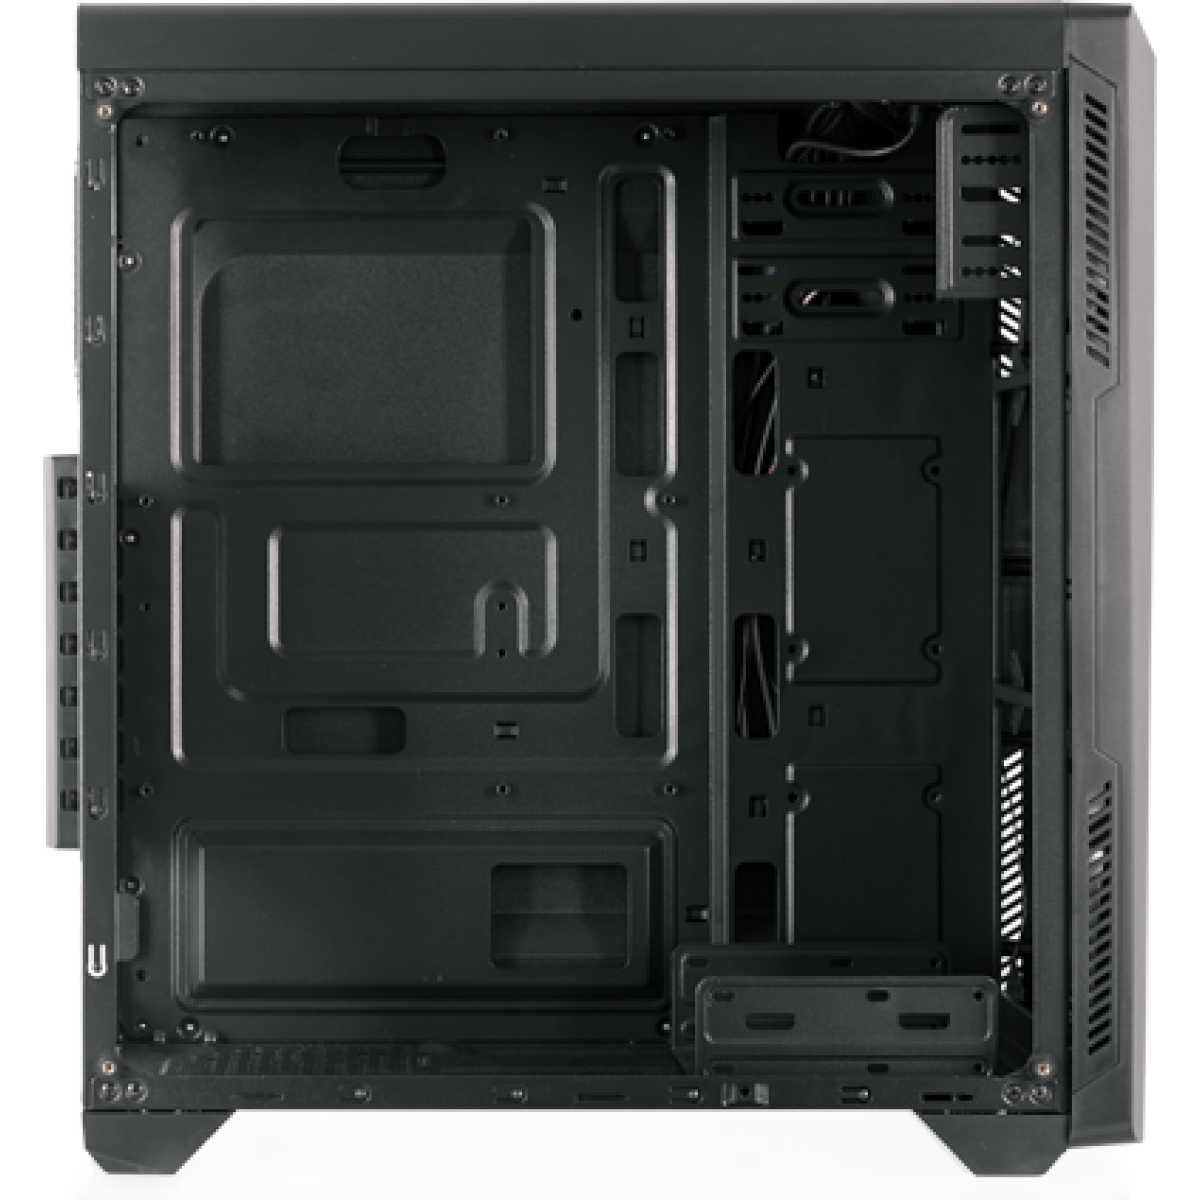 Gabinete Gamer Riotoro, Mid Tower, Vidro Temperado, Black, Sem Fonte, Com 1 Fan, CR-100TG RGB